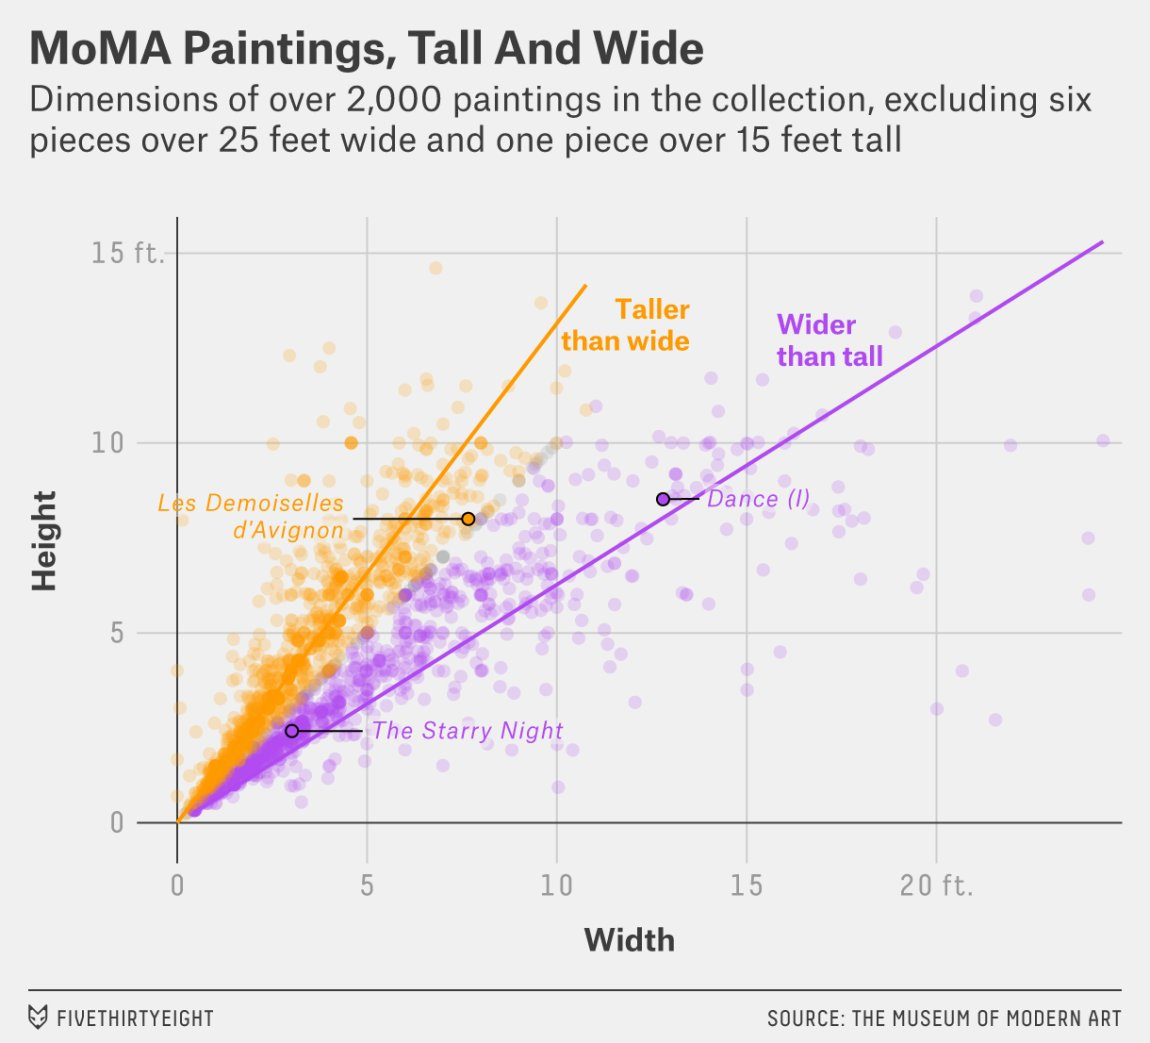 A nerd's guide to the 2,229 paintings at MoMA: https://t.co/ZsVUkgmI8T https://t.co/DjpBMWcFCA